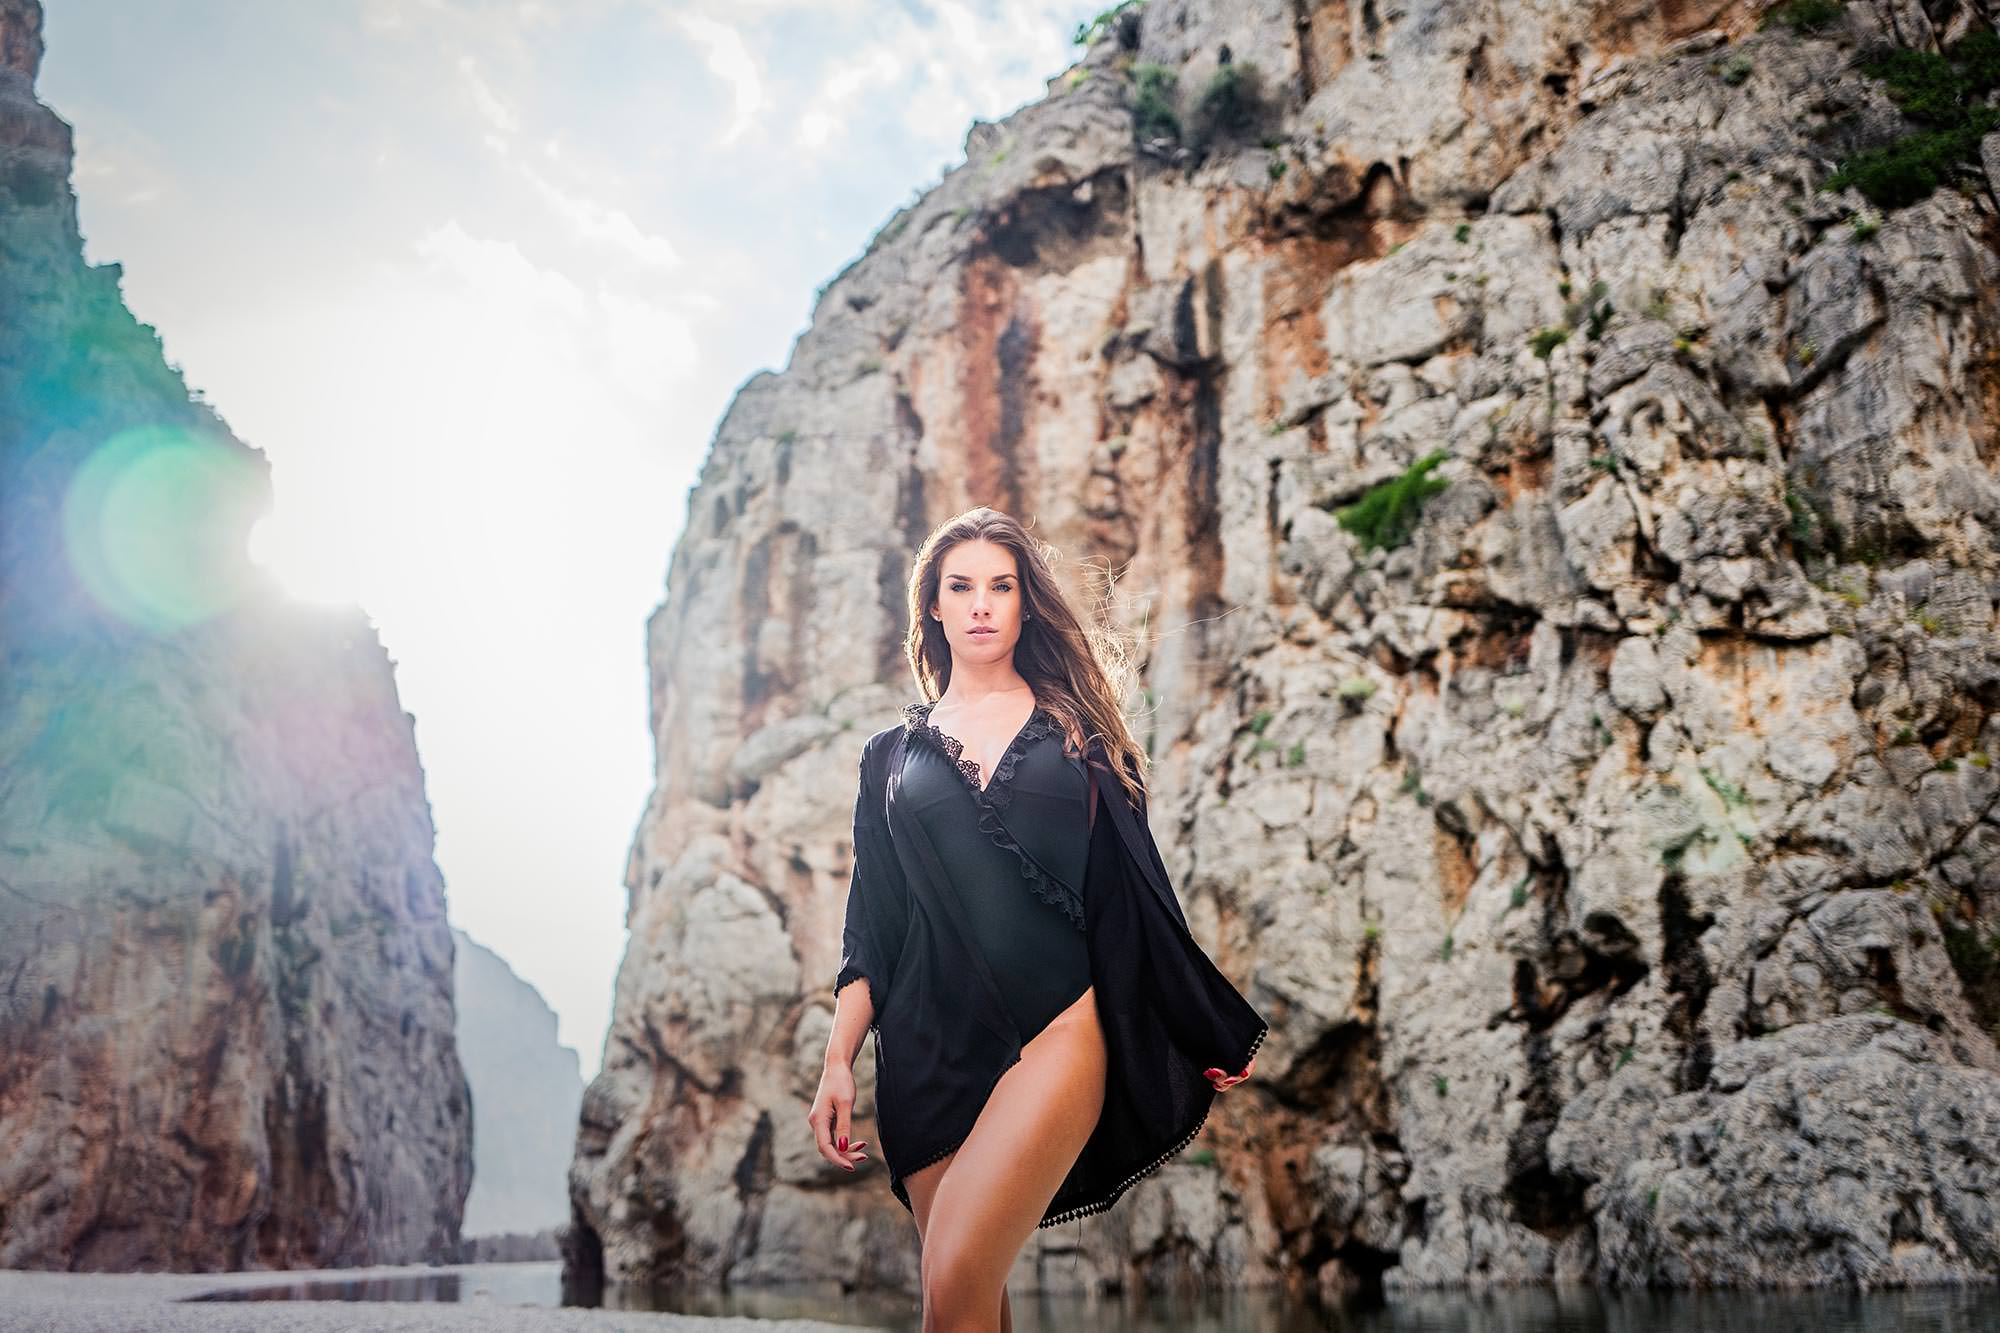 mallorca-model-fotoshooting-004.jpg